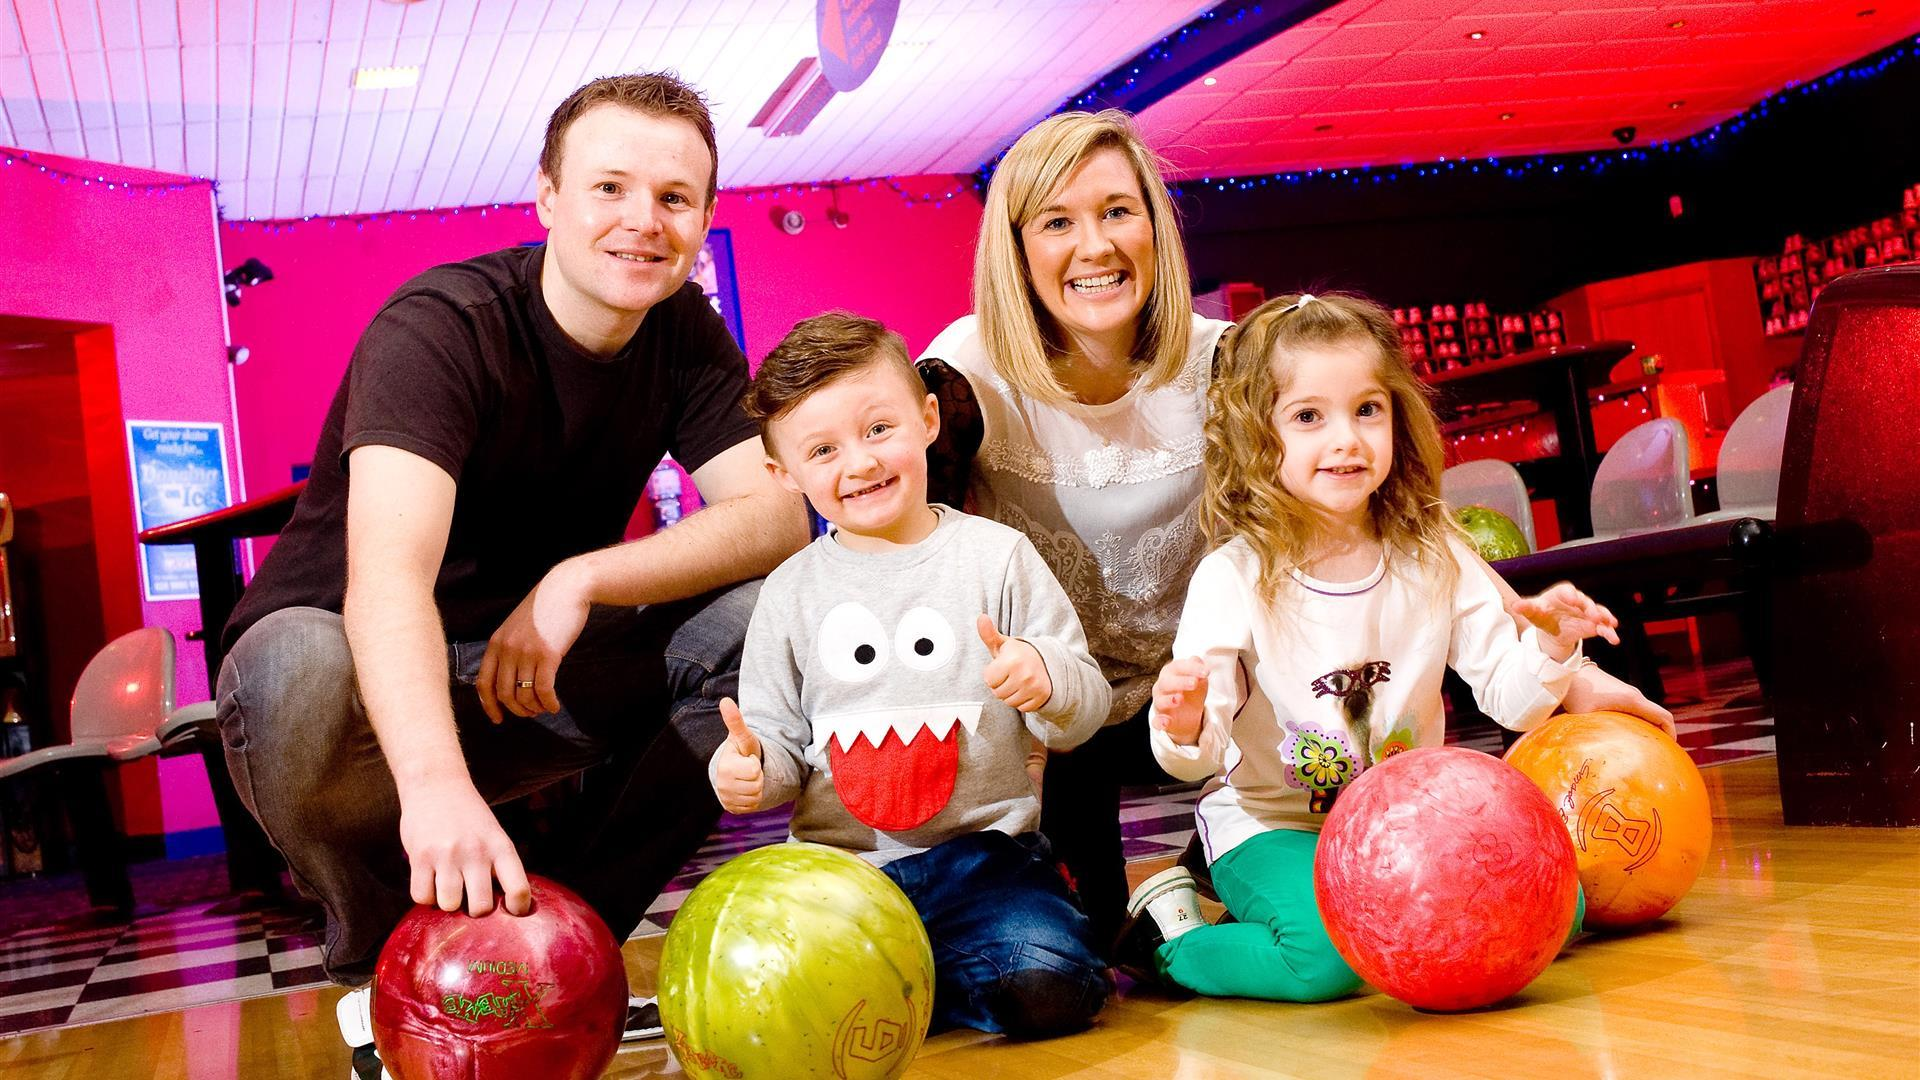 Image is of a family posing for a photo in the bowling alley